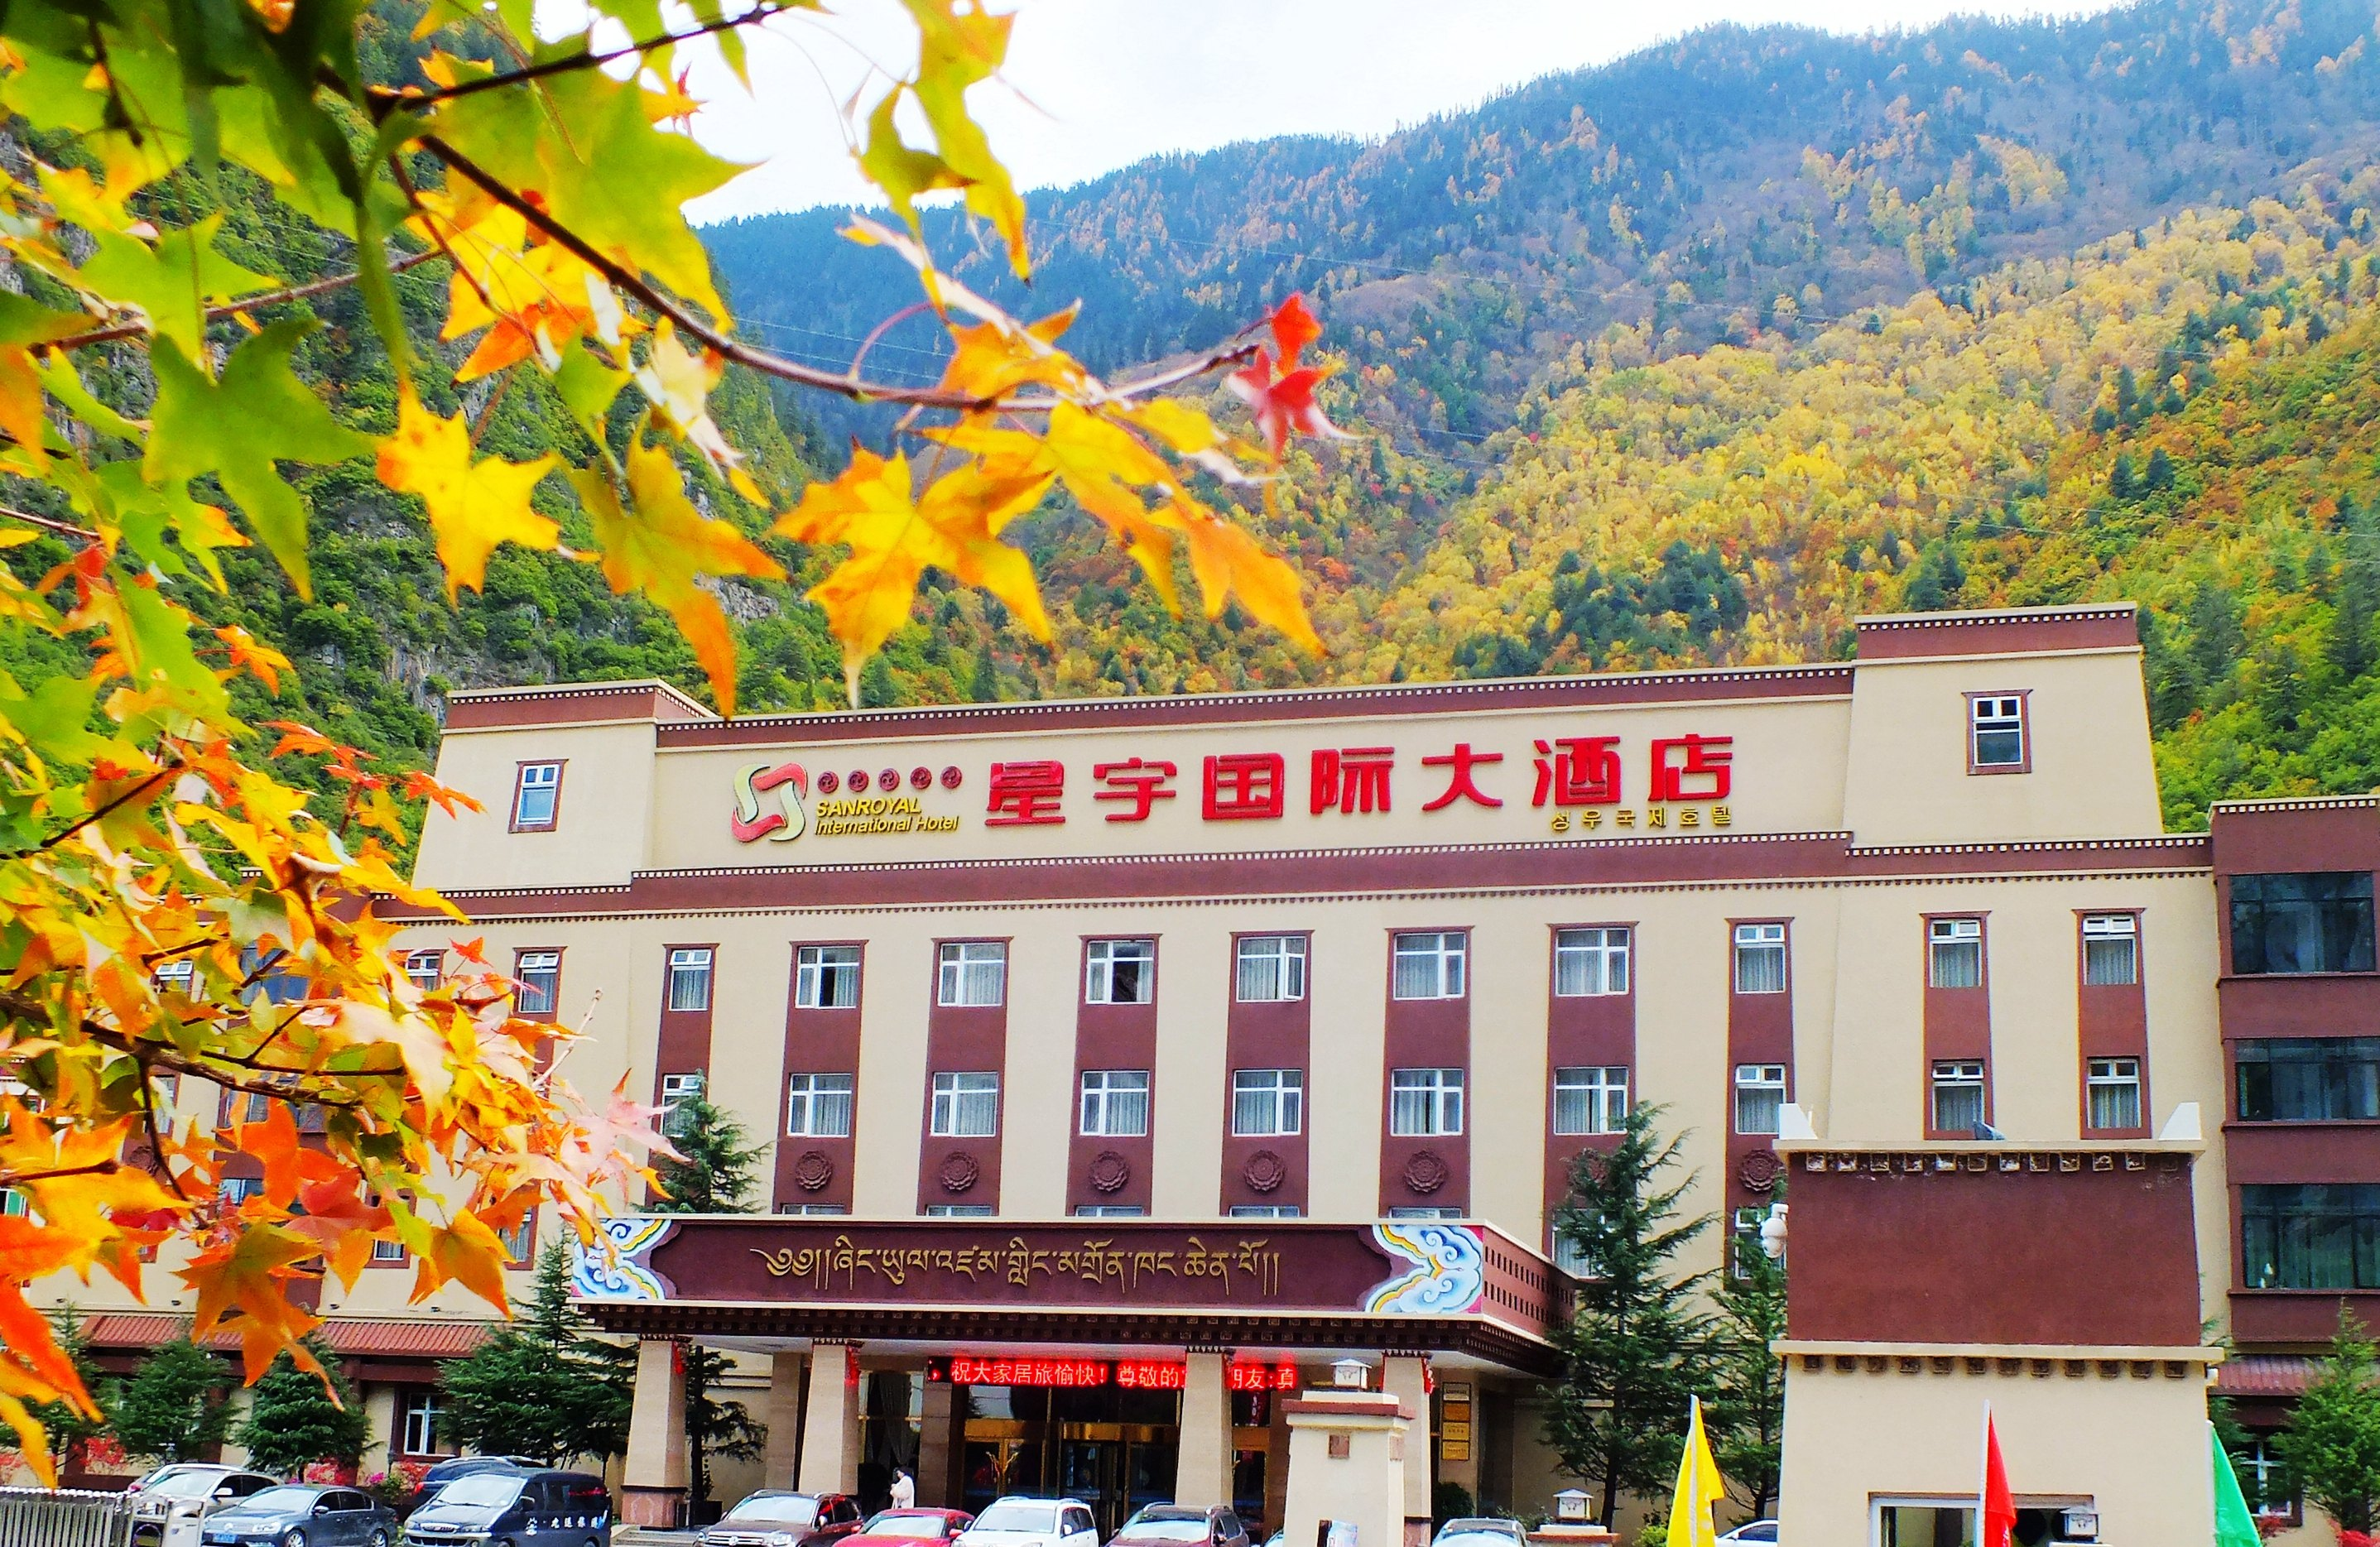 Jiuzhai Sanroyal International Hotel